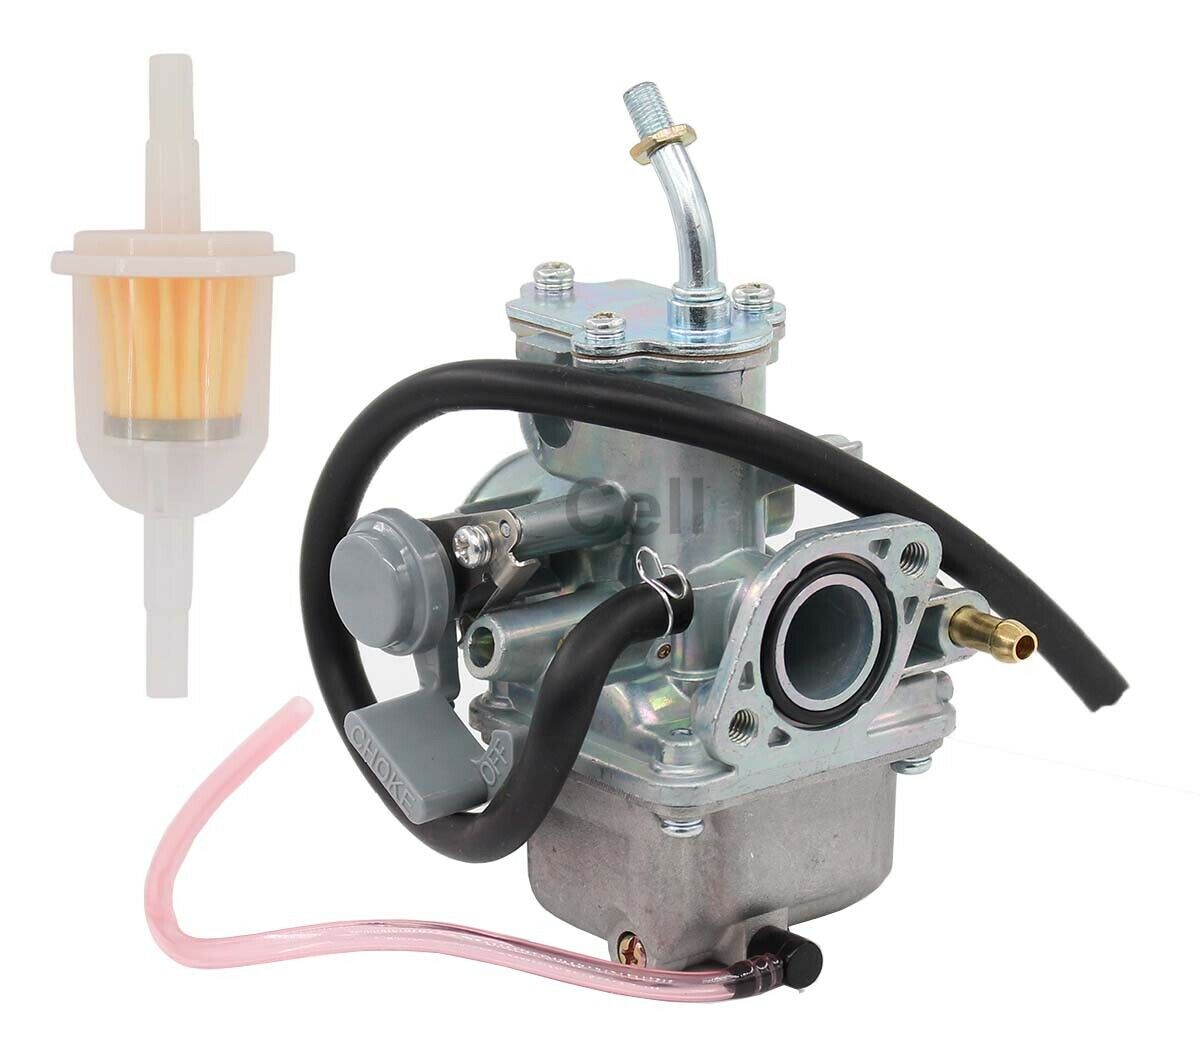 Carburetor For Yamaha Badger 80 YFM 80 85 86 87 88 ATV Carb with  Fuel Filter